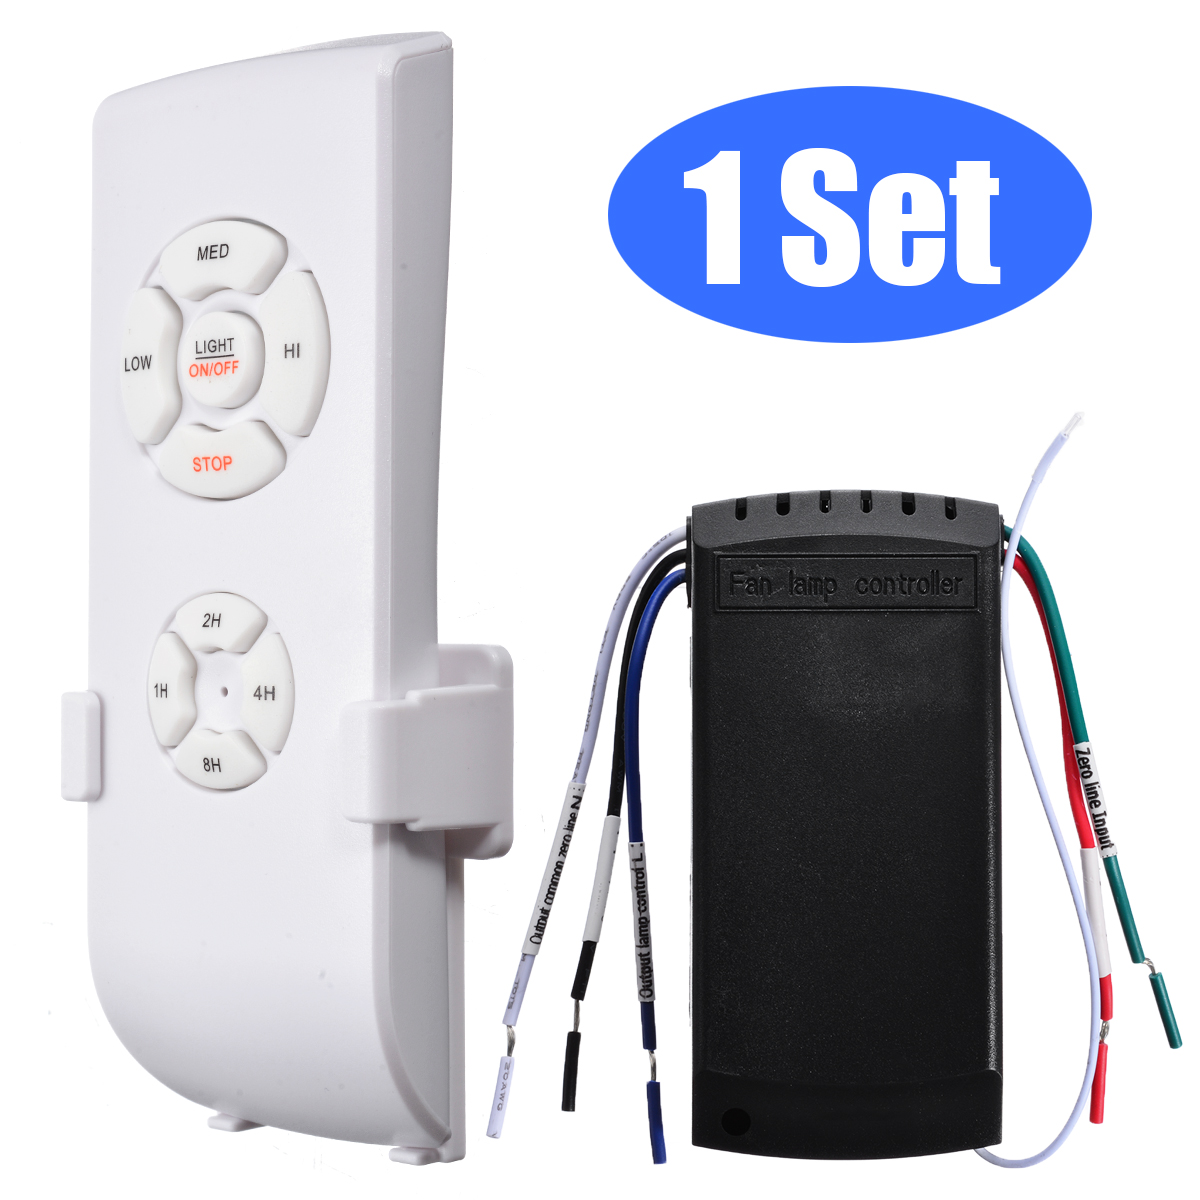 1Set  Plastic Universal 90~265V Ceiling Fan Light Lamp Wireless Remote Control Receiver Timing Remote Controls